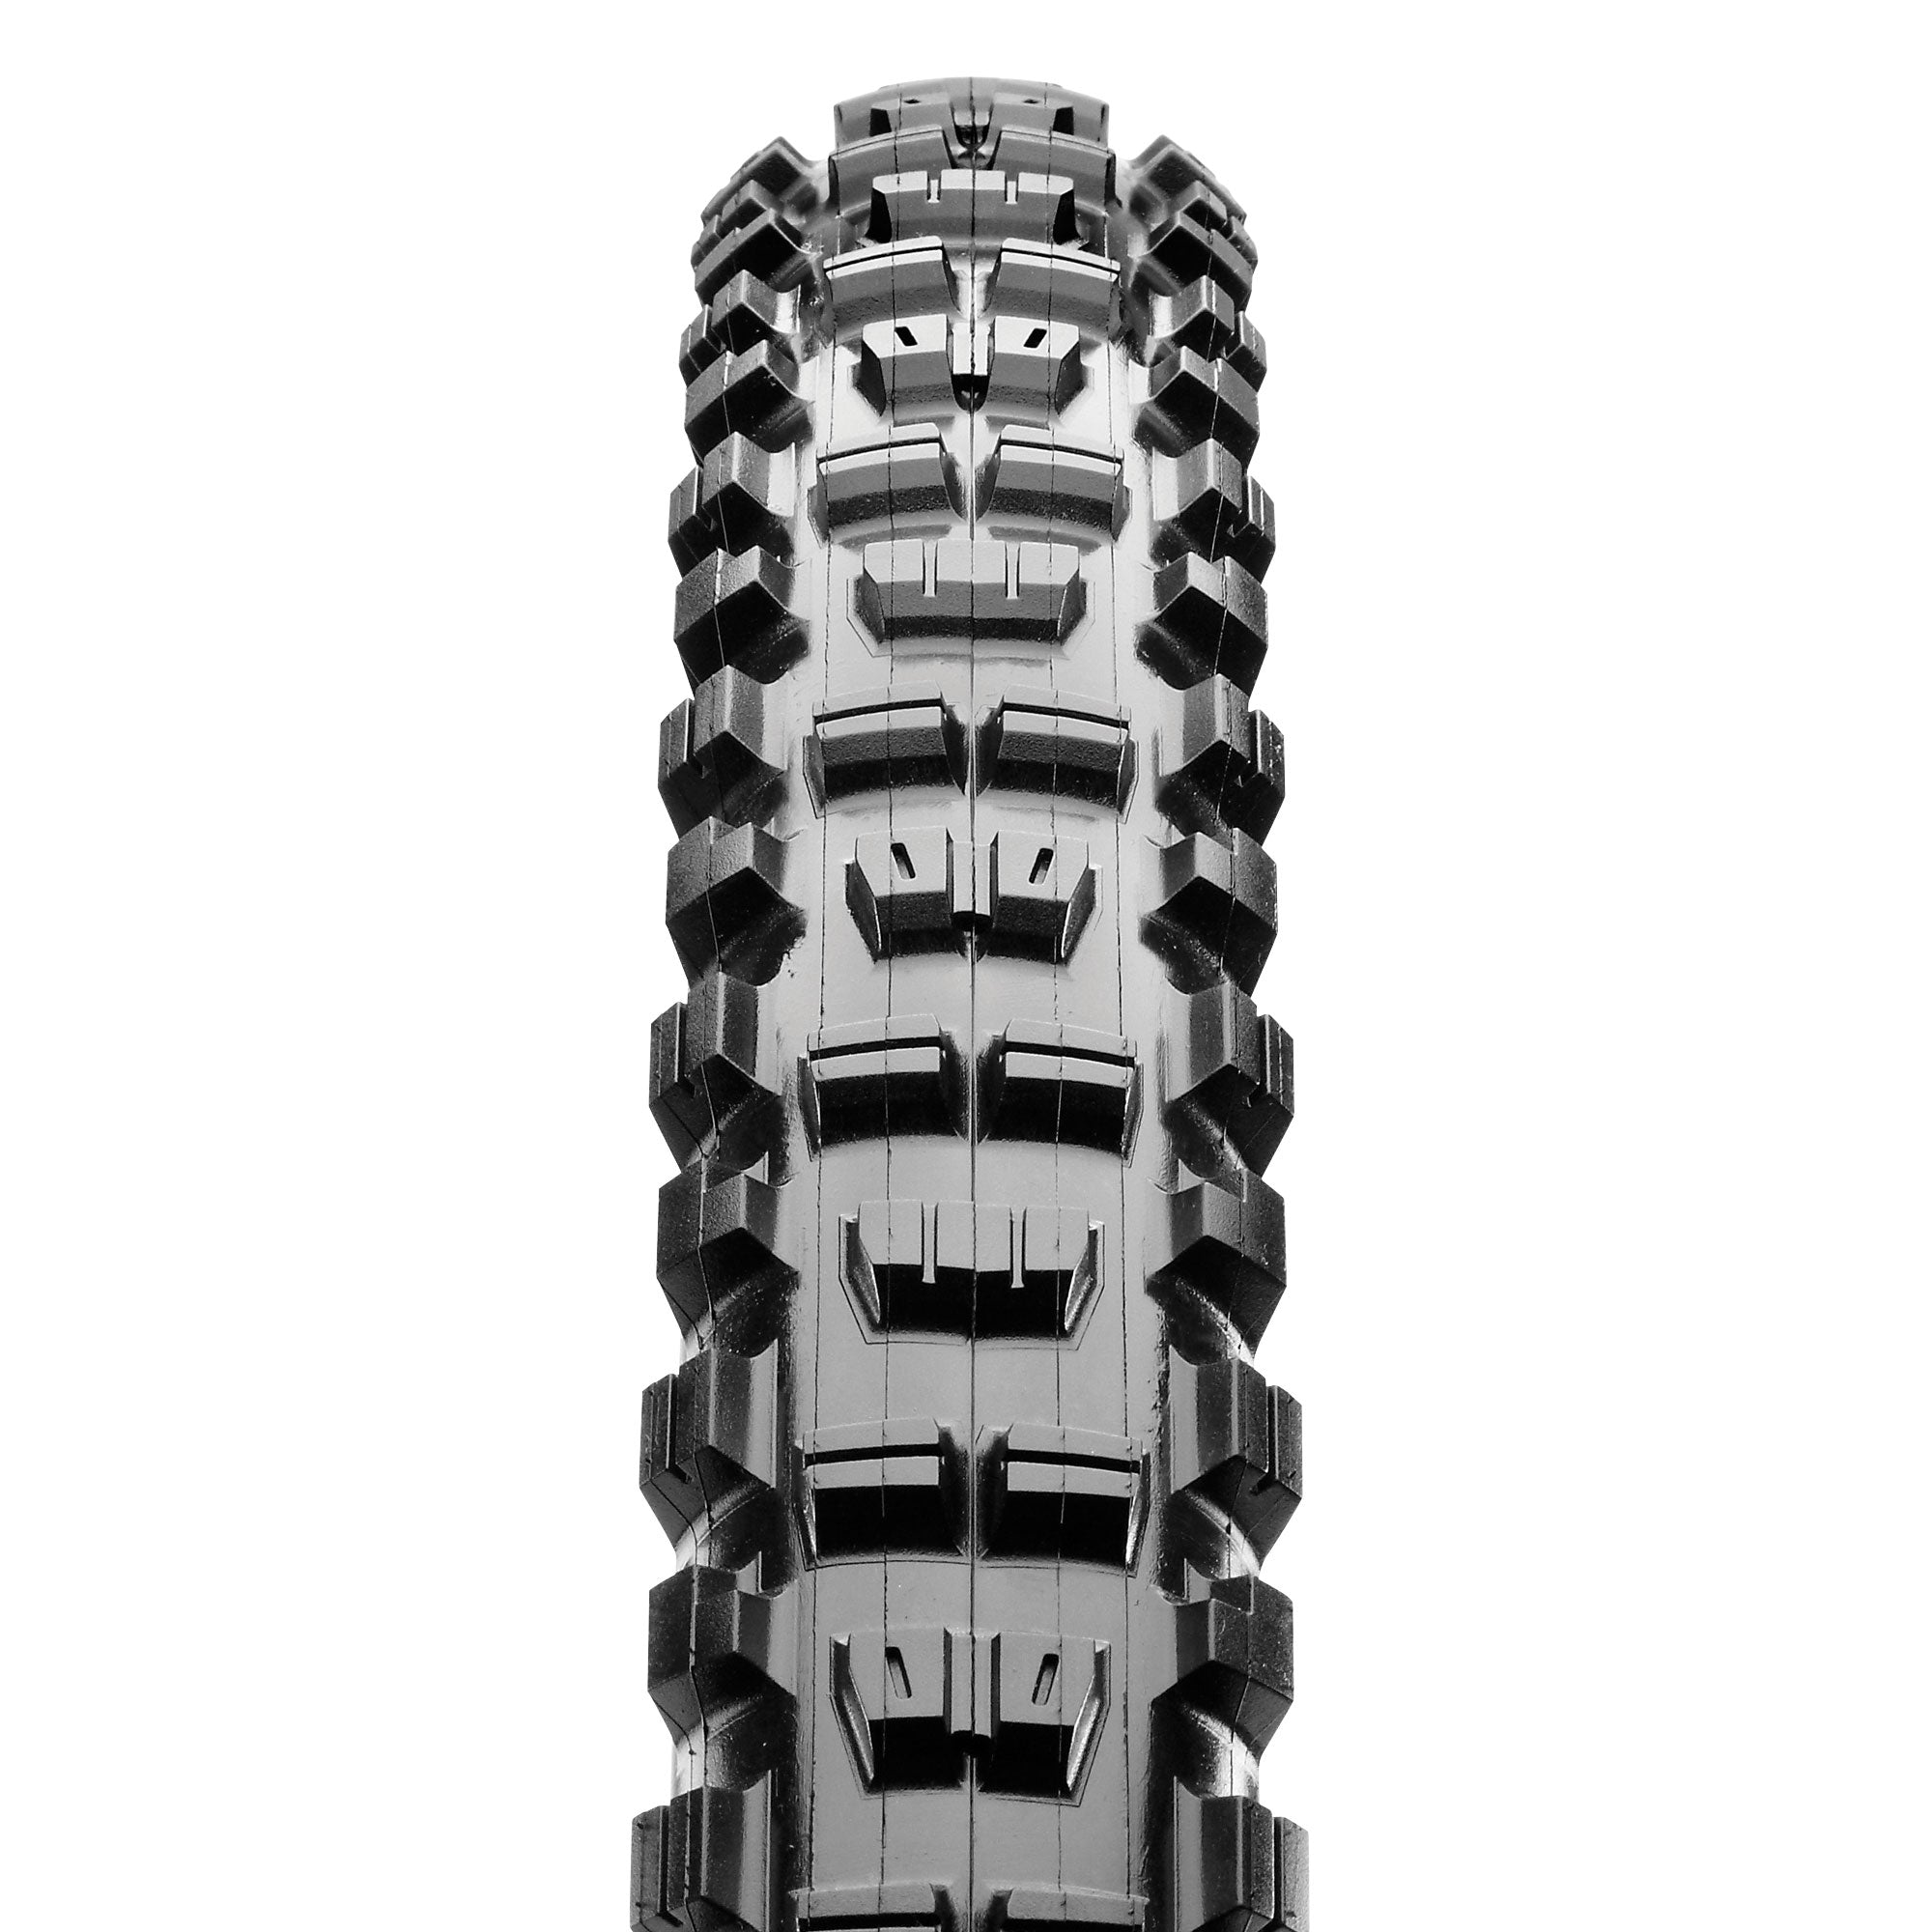 Maxxis  Minion DHR II 29x2.40 WT 60 TPI Folding Dual Compound Tire for sale online